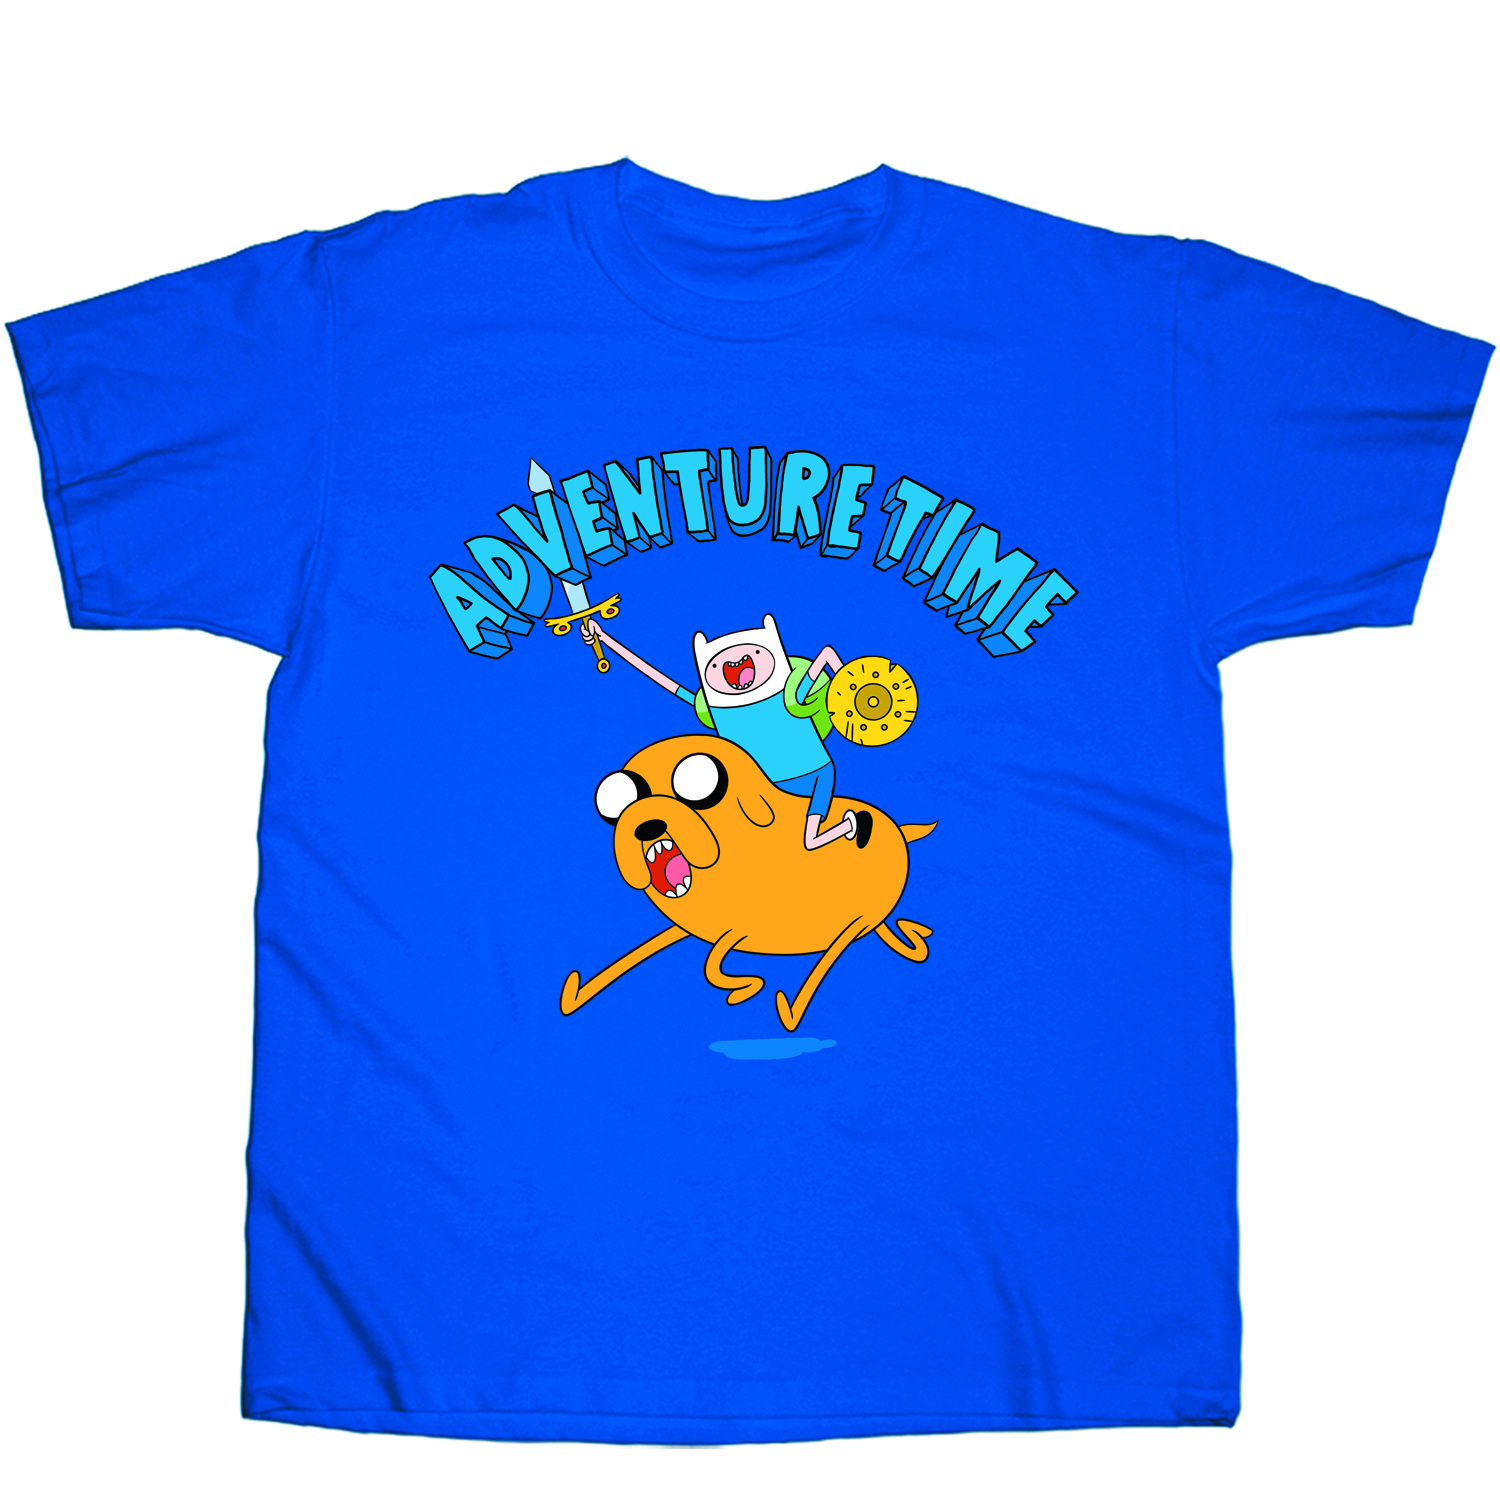 ADVENTURE TIME ONWARD CHARGE T/S LG